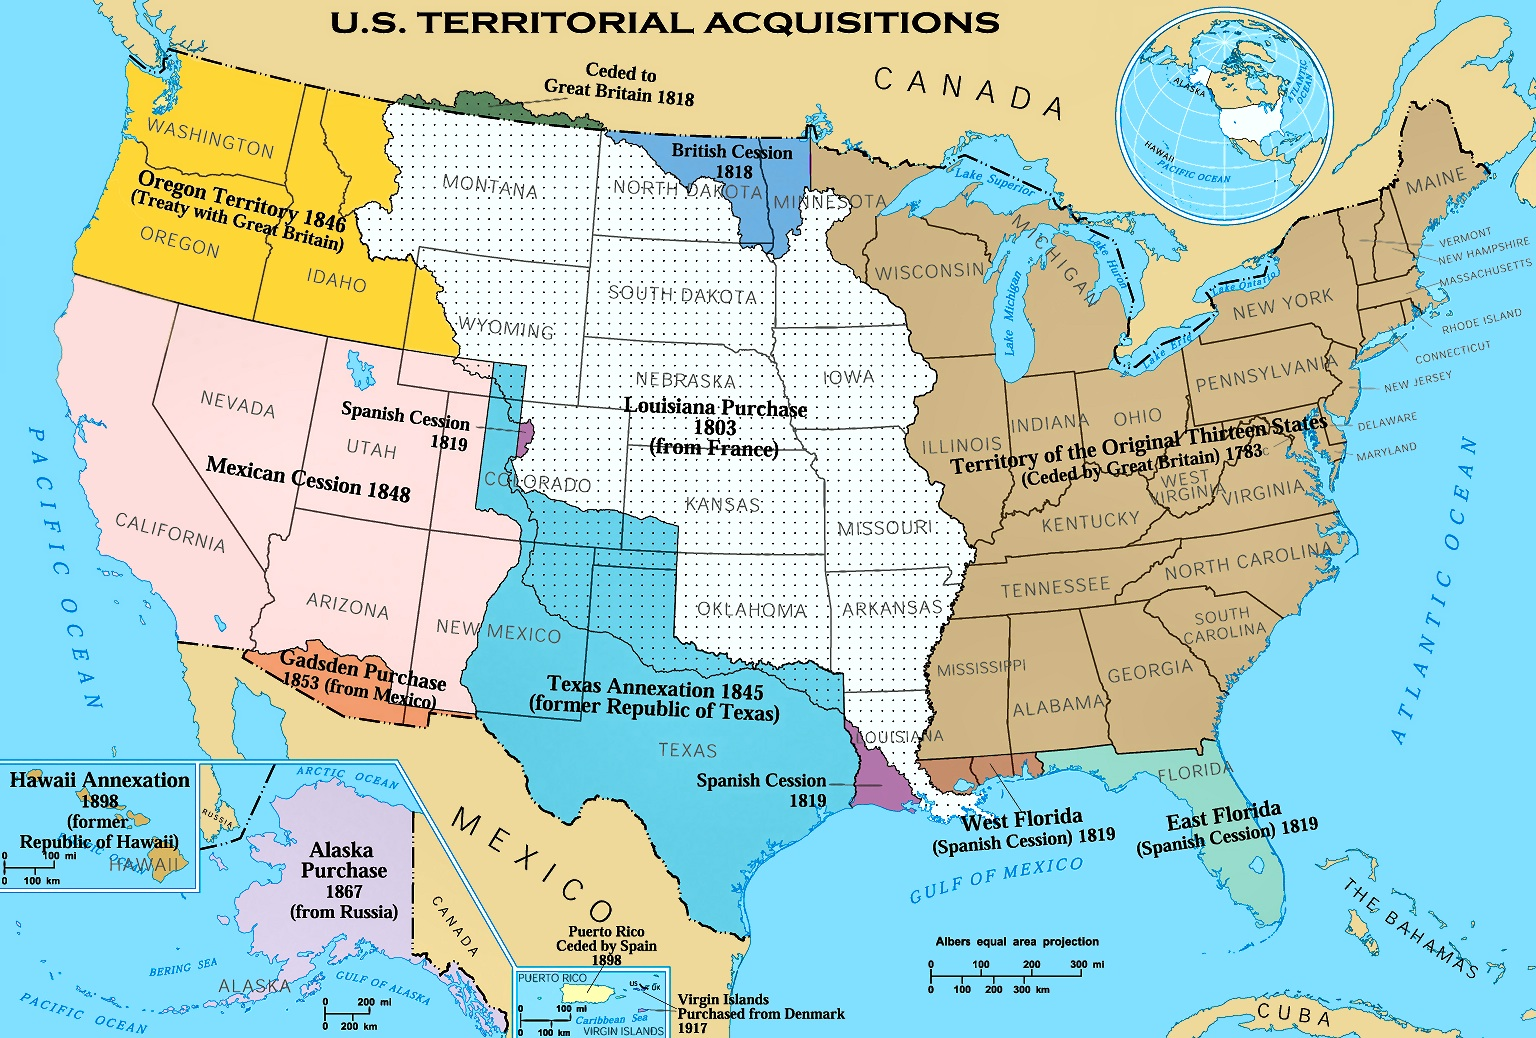 U.S._Territorial_Acquisitions.jpg